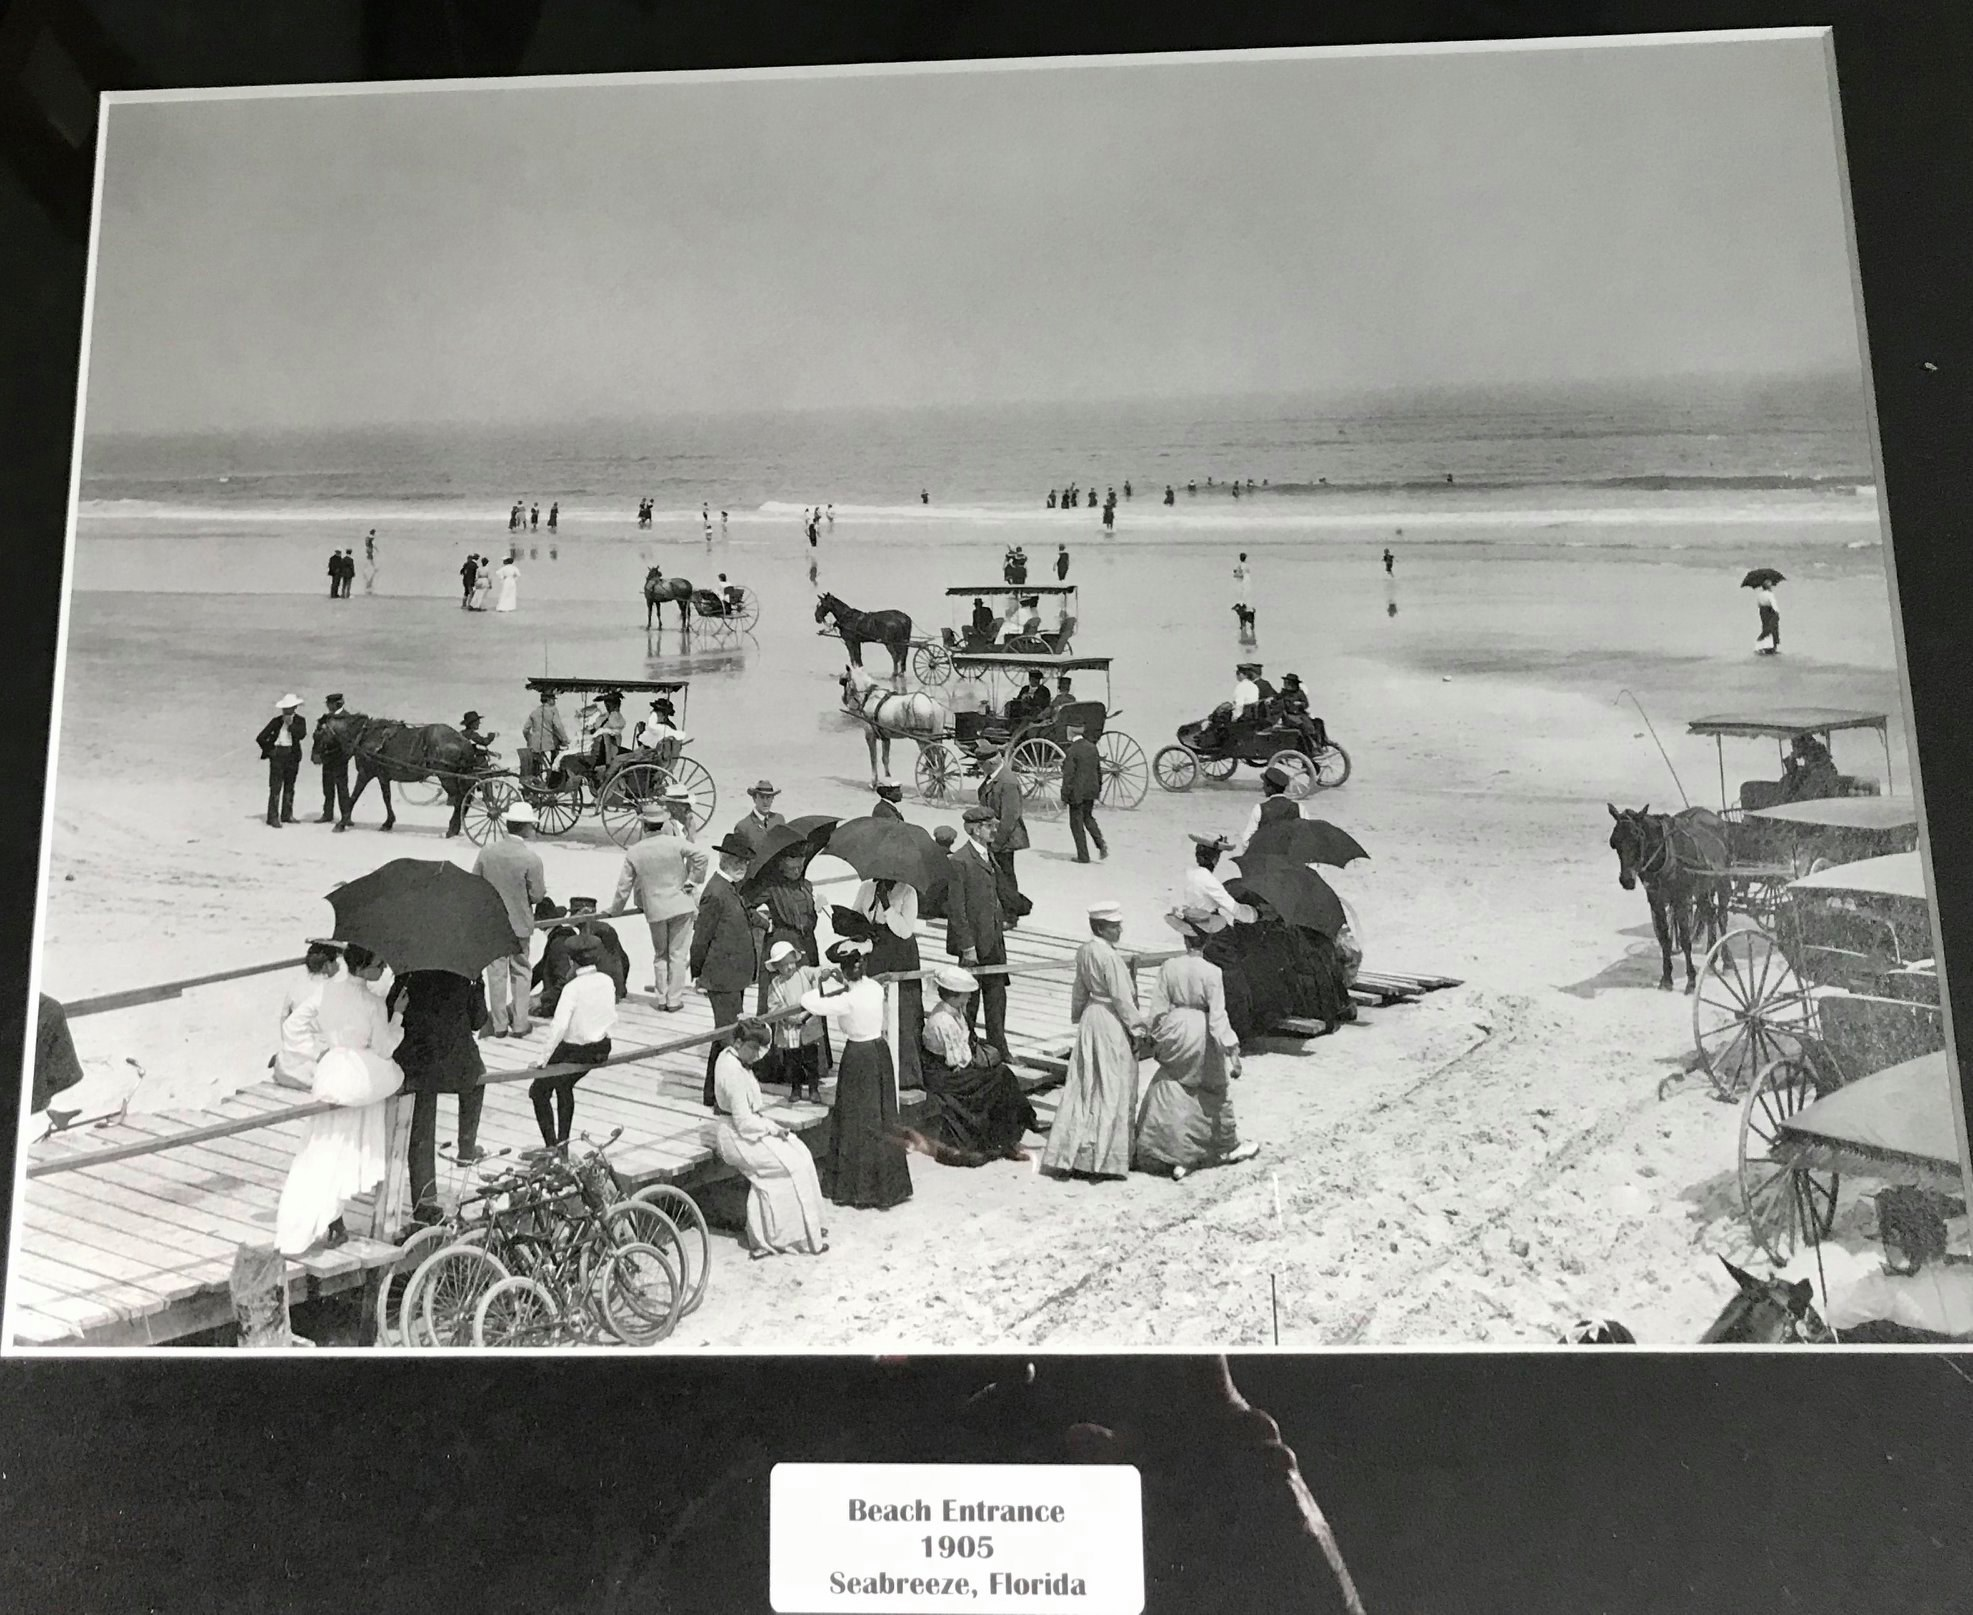 The beach in Seabreeze, Florida 1905.jpg